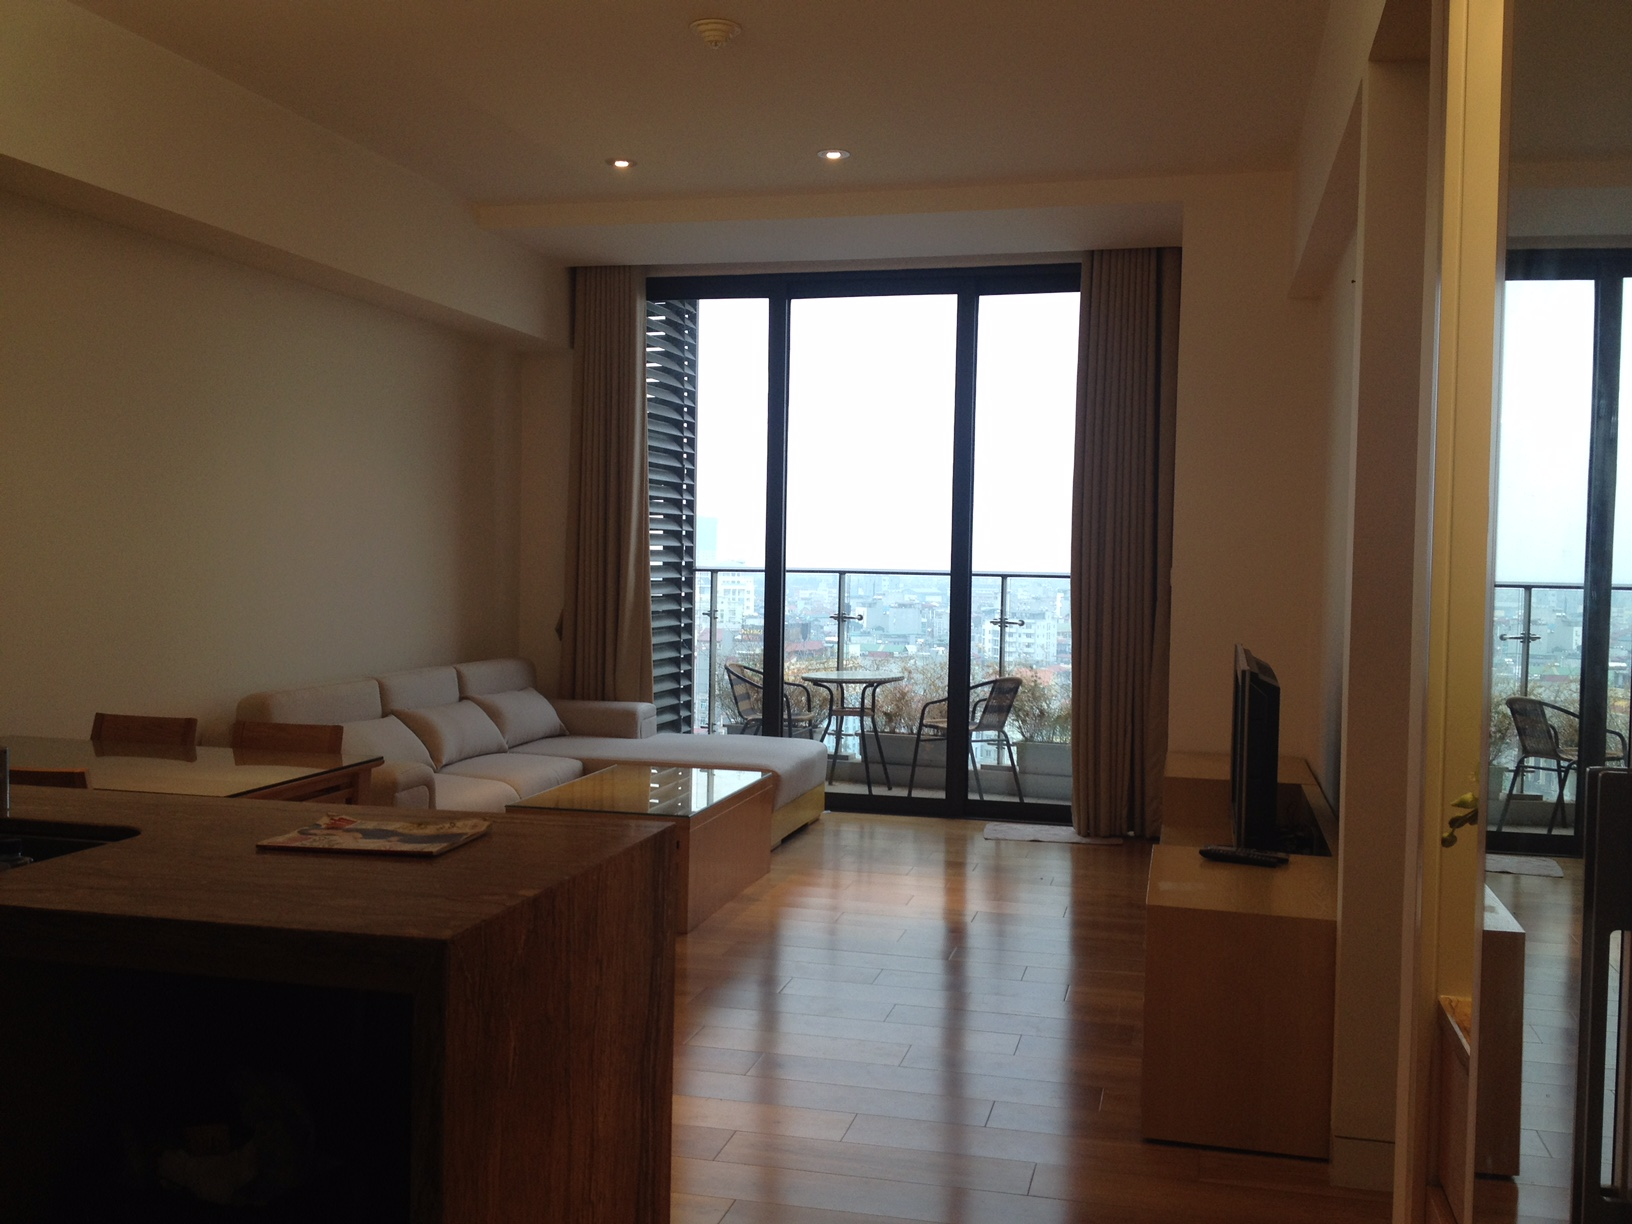 furnished 2 bedroom apartment for rent in iph, cau giay